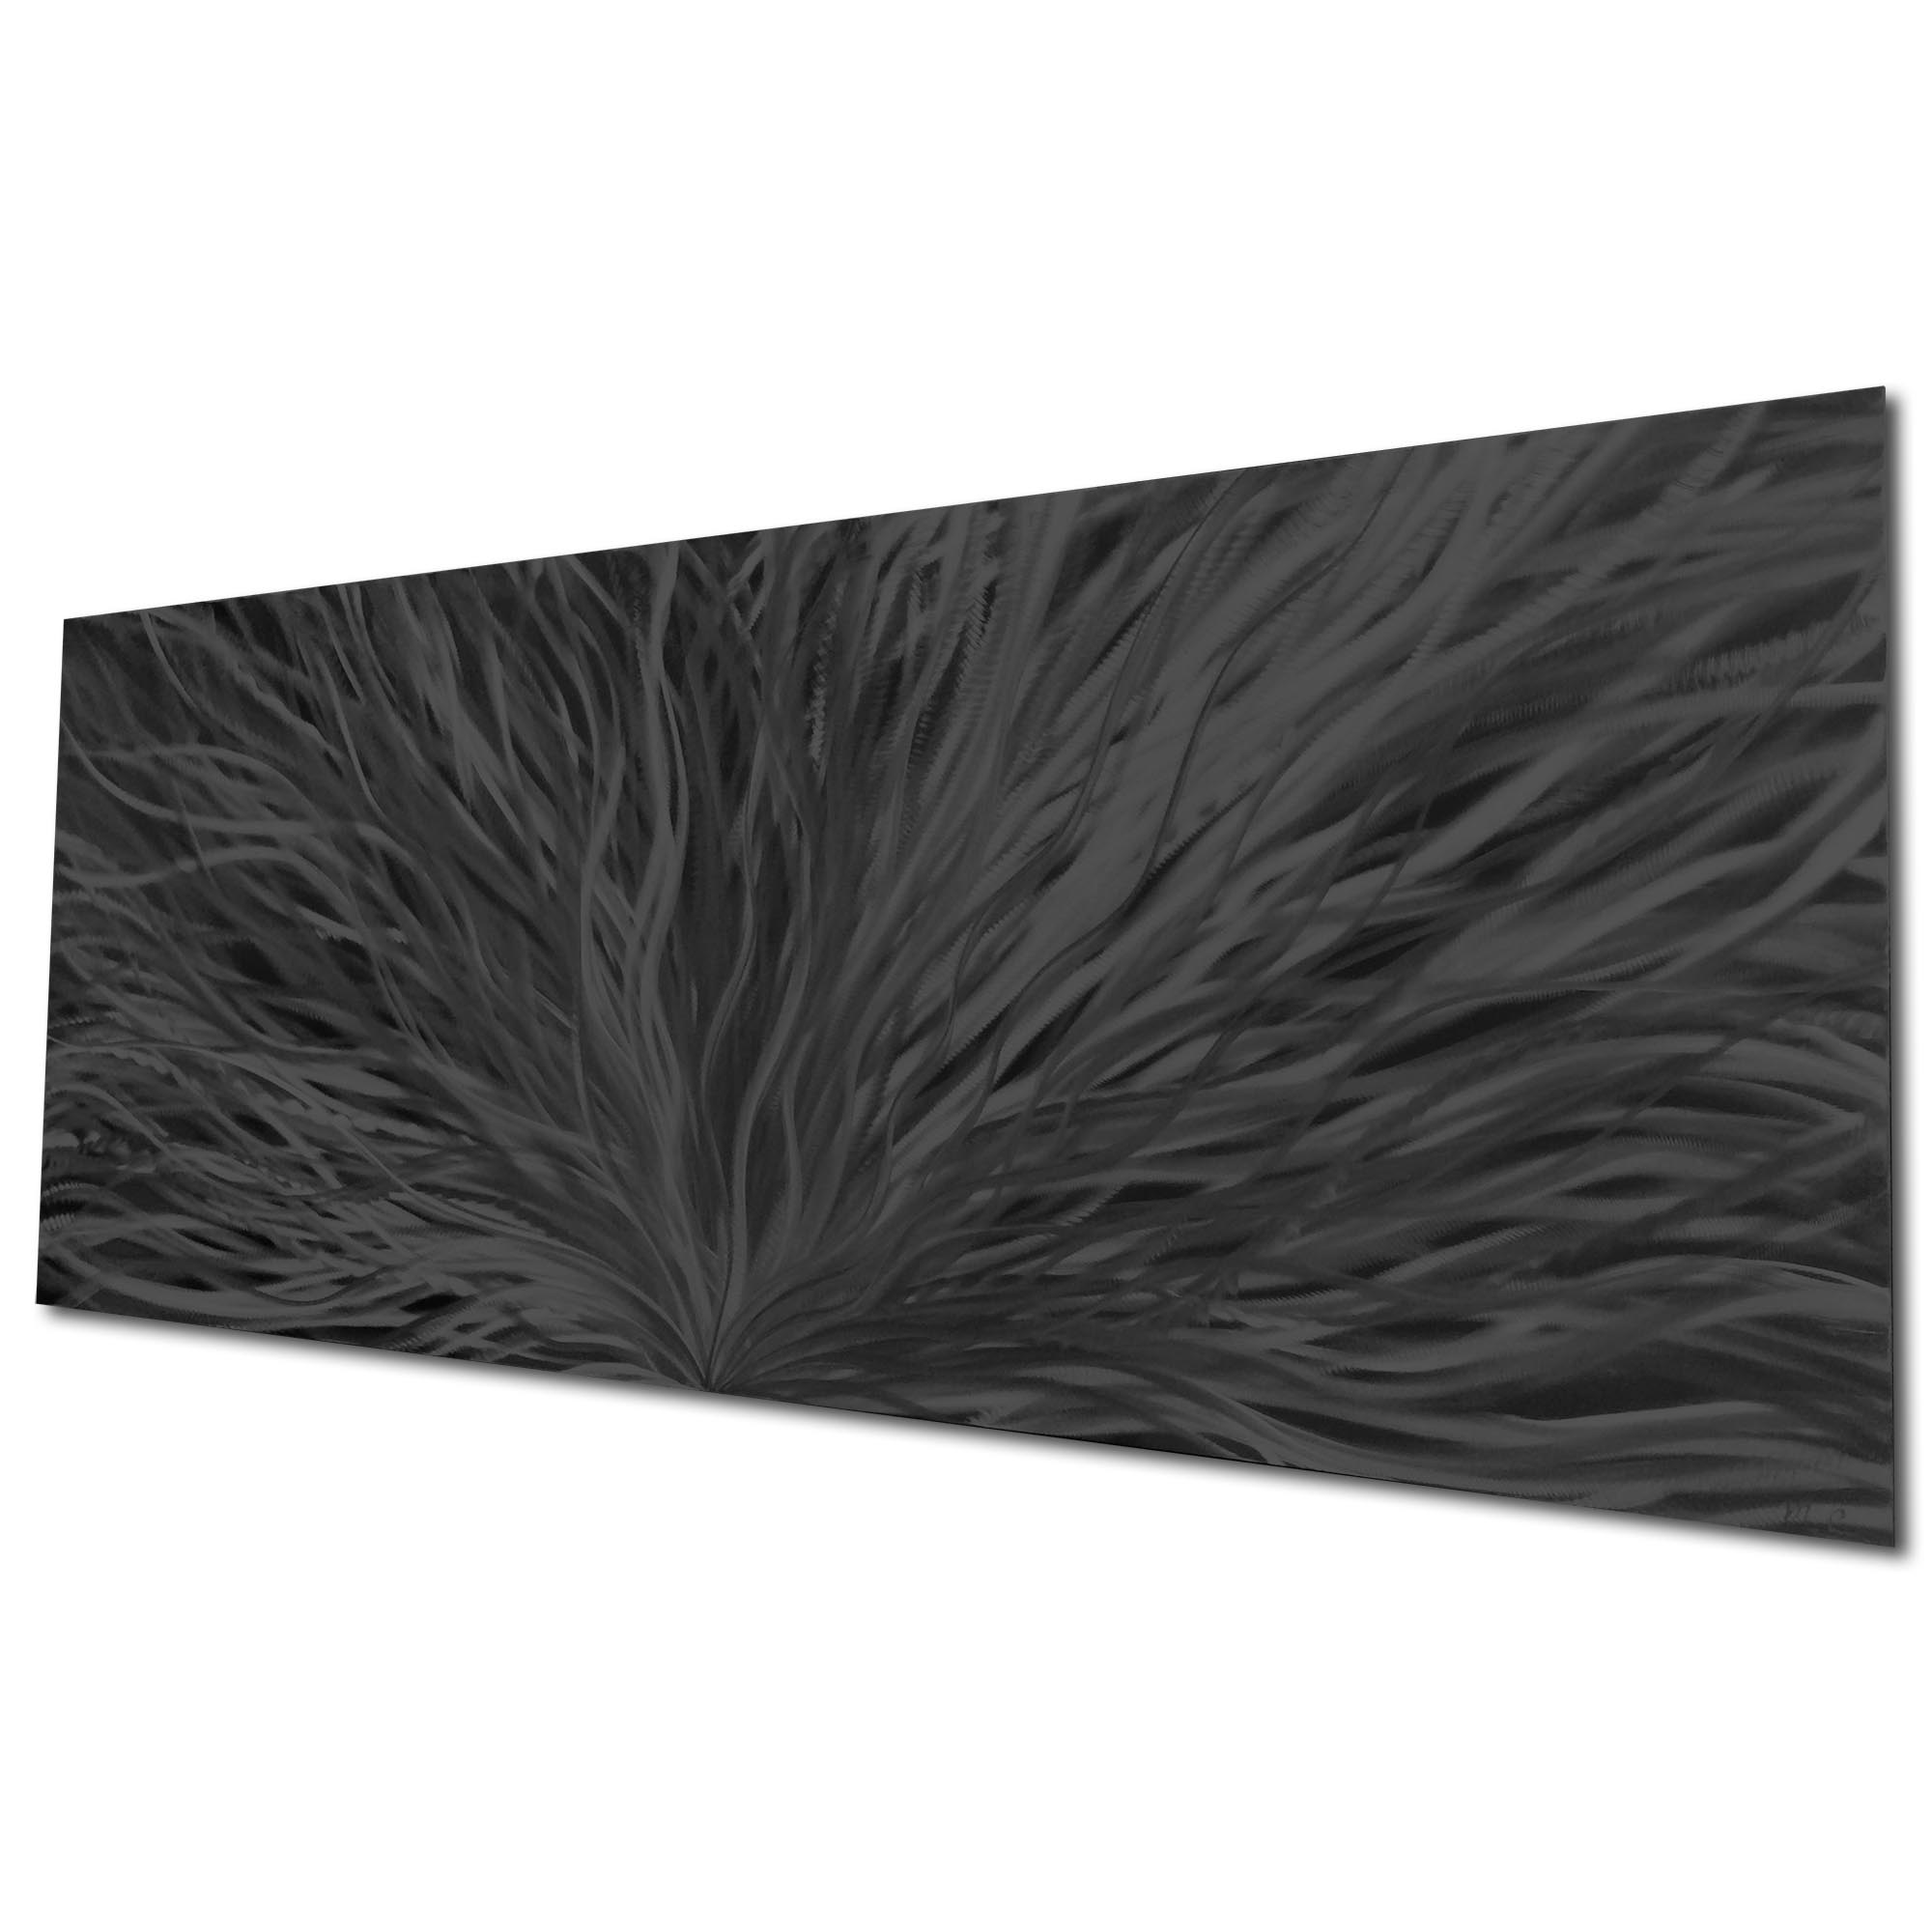 Blooming Black by Helena Martin - Original Abstract Art on Ground and Painted Metal - Image 3